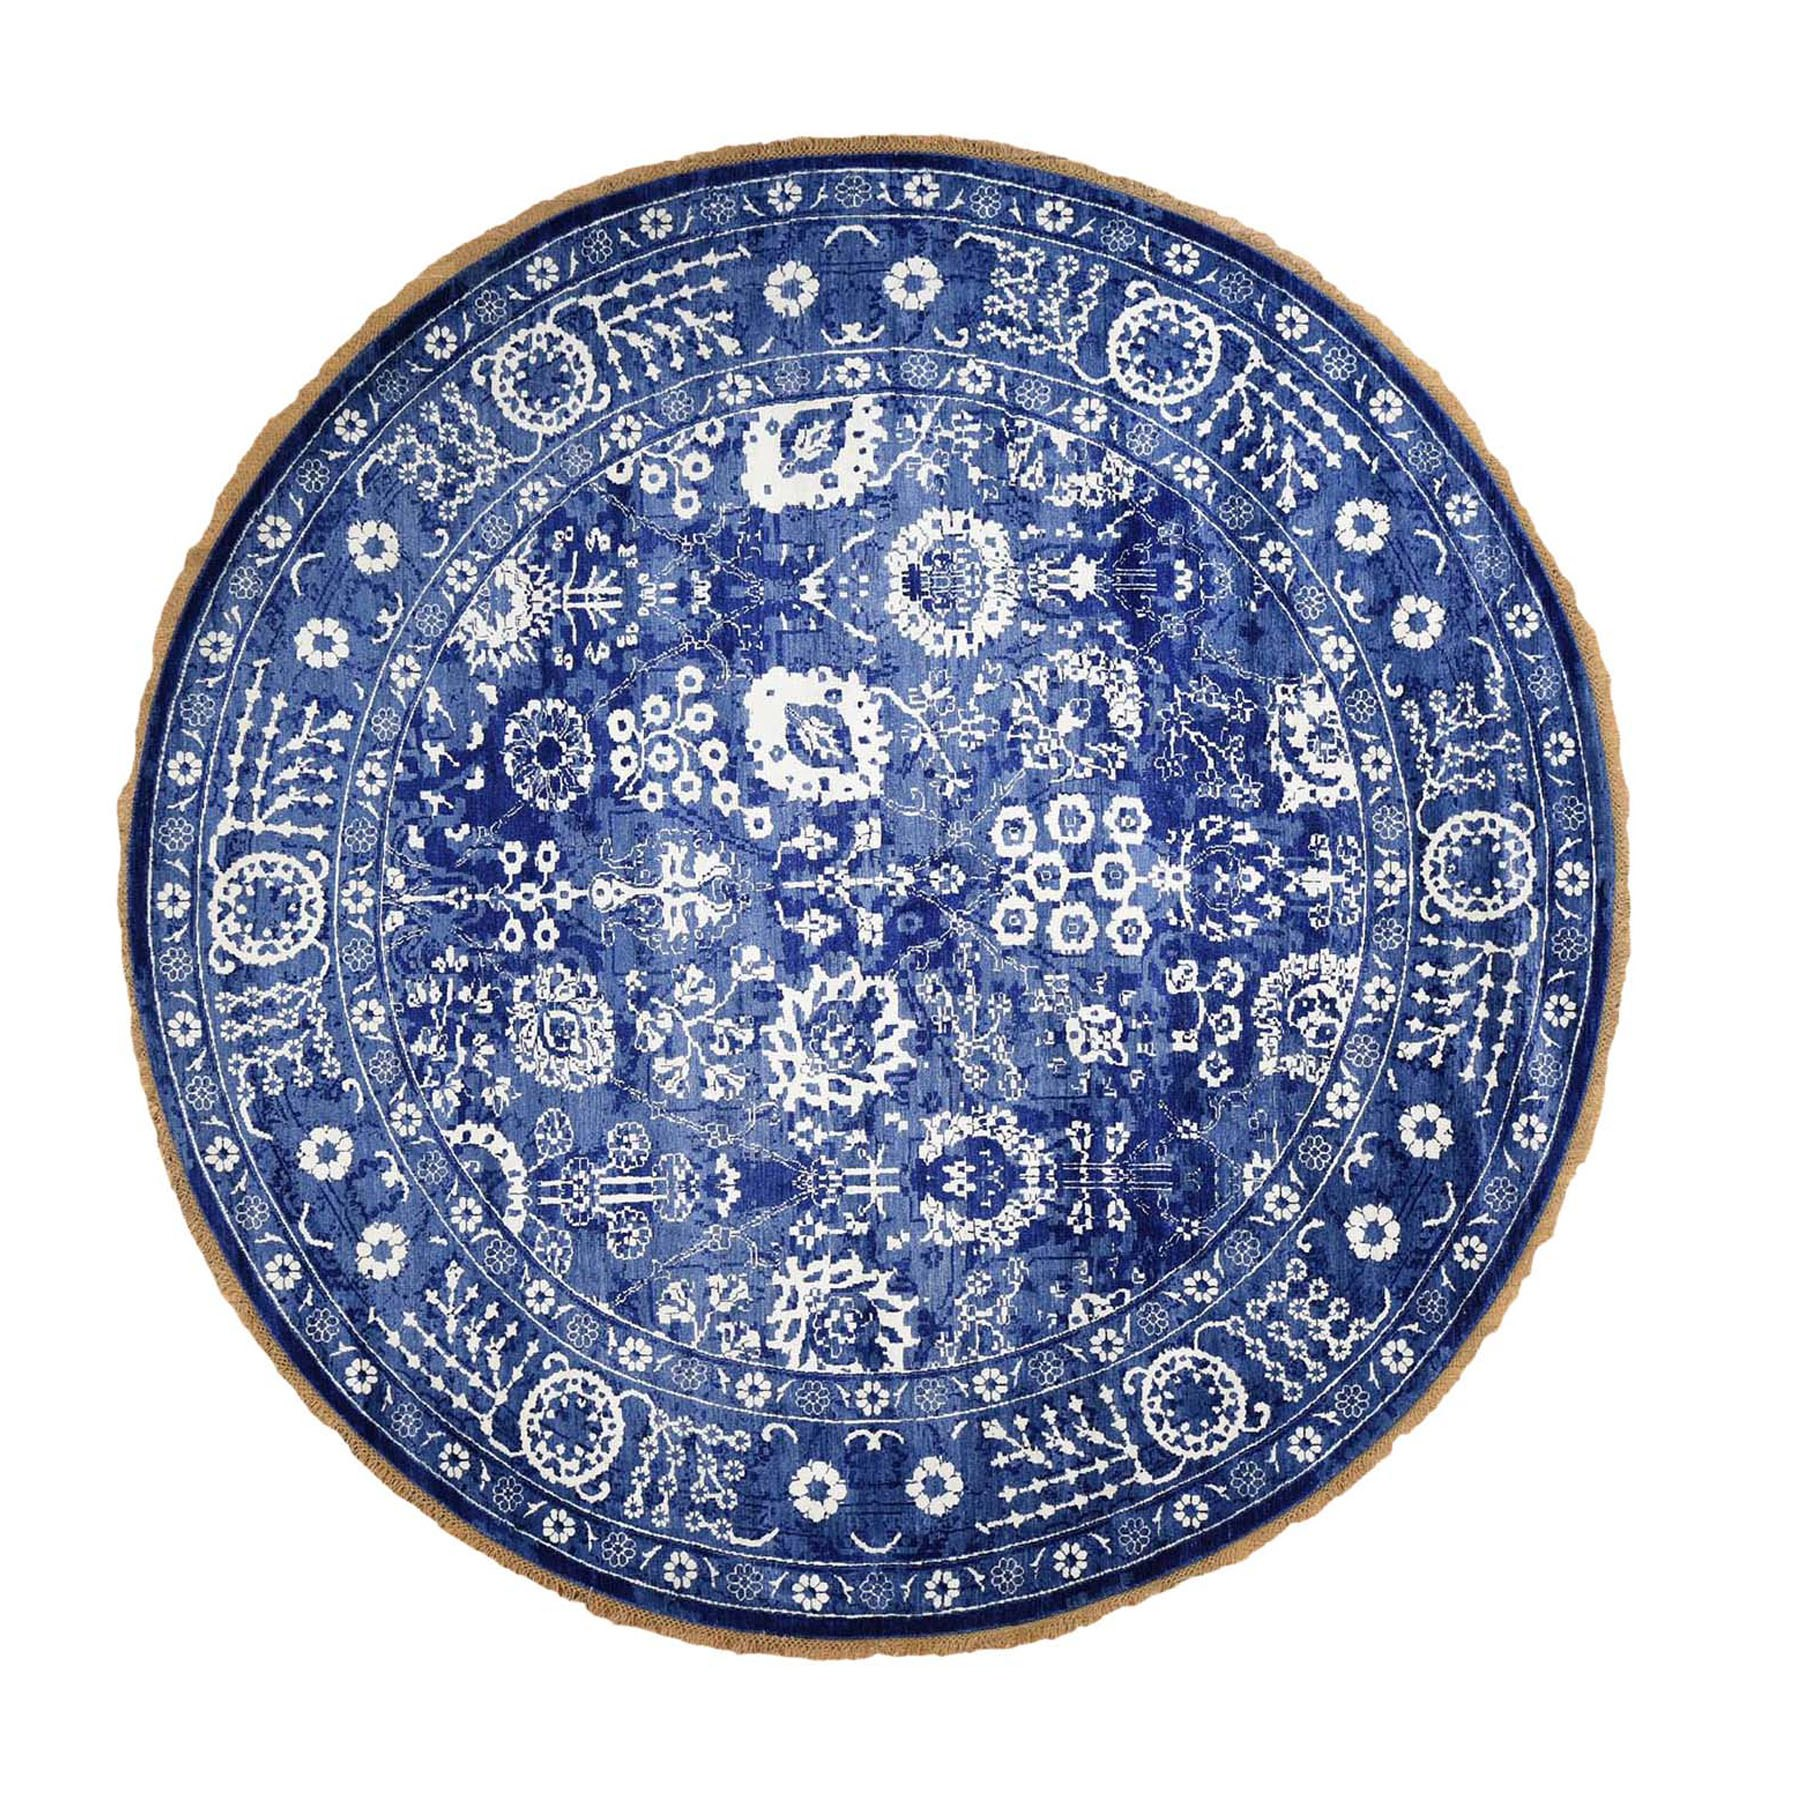 10'x10' Round Blue Wool and Silk Tone On Tone Fine Oriental Hand Woven Oriental Rug